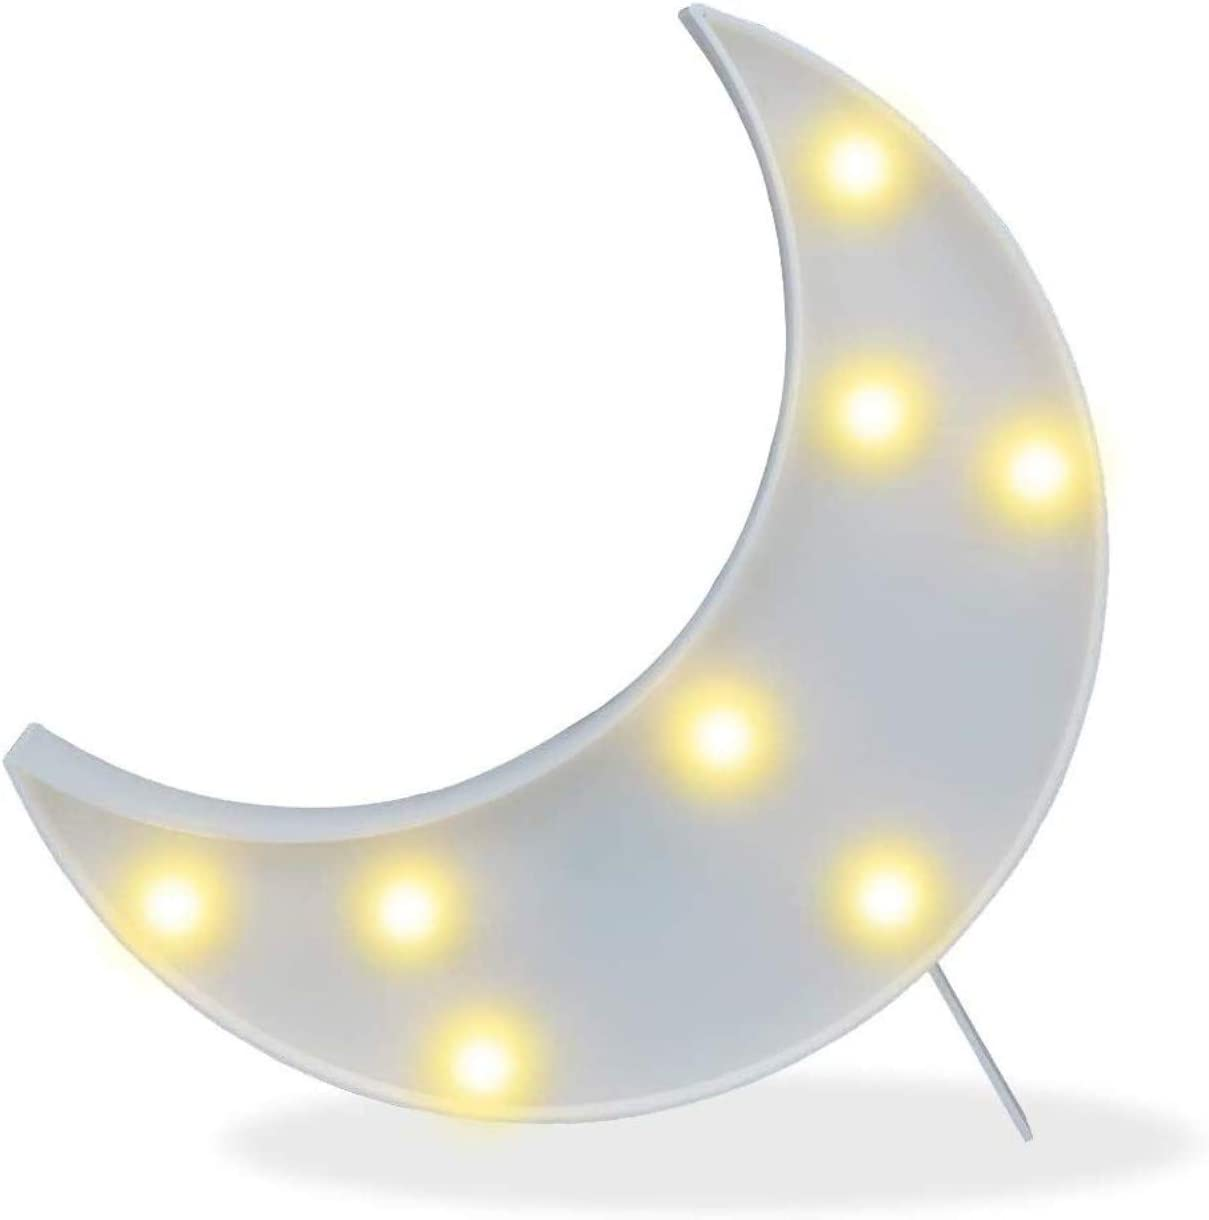 Decorative Crescent Moon Decor Light,Cute LED Nursery Night Lamp Gift-Marquee Moon Sign Wall Decor for Birthday Party,Kids Room, Living Room Decor(White)